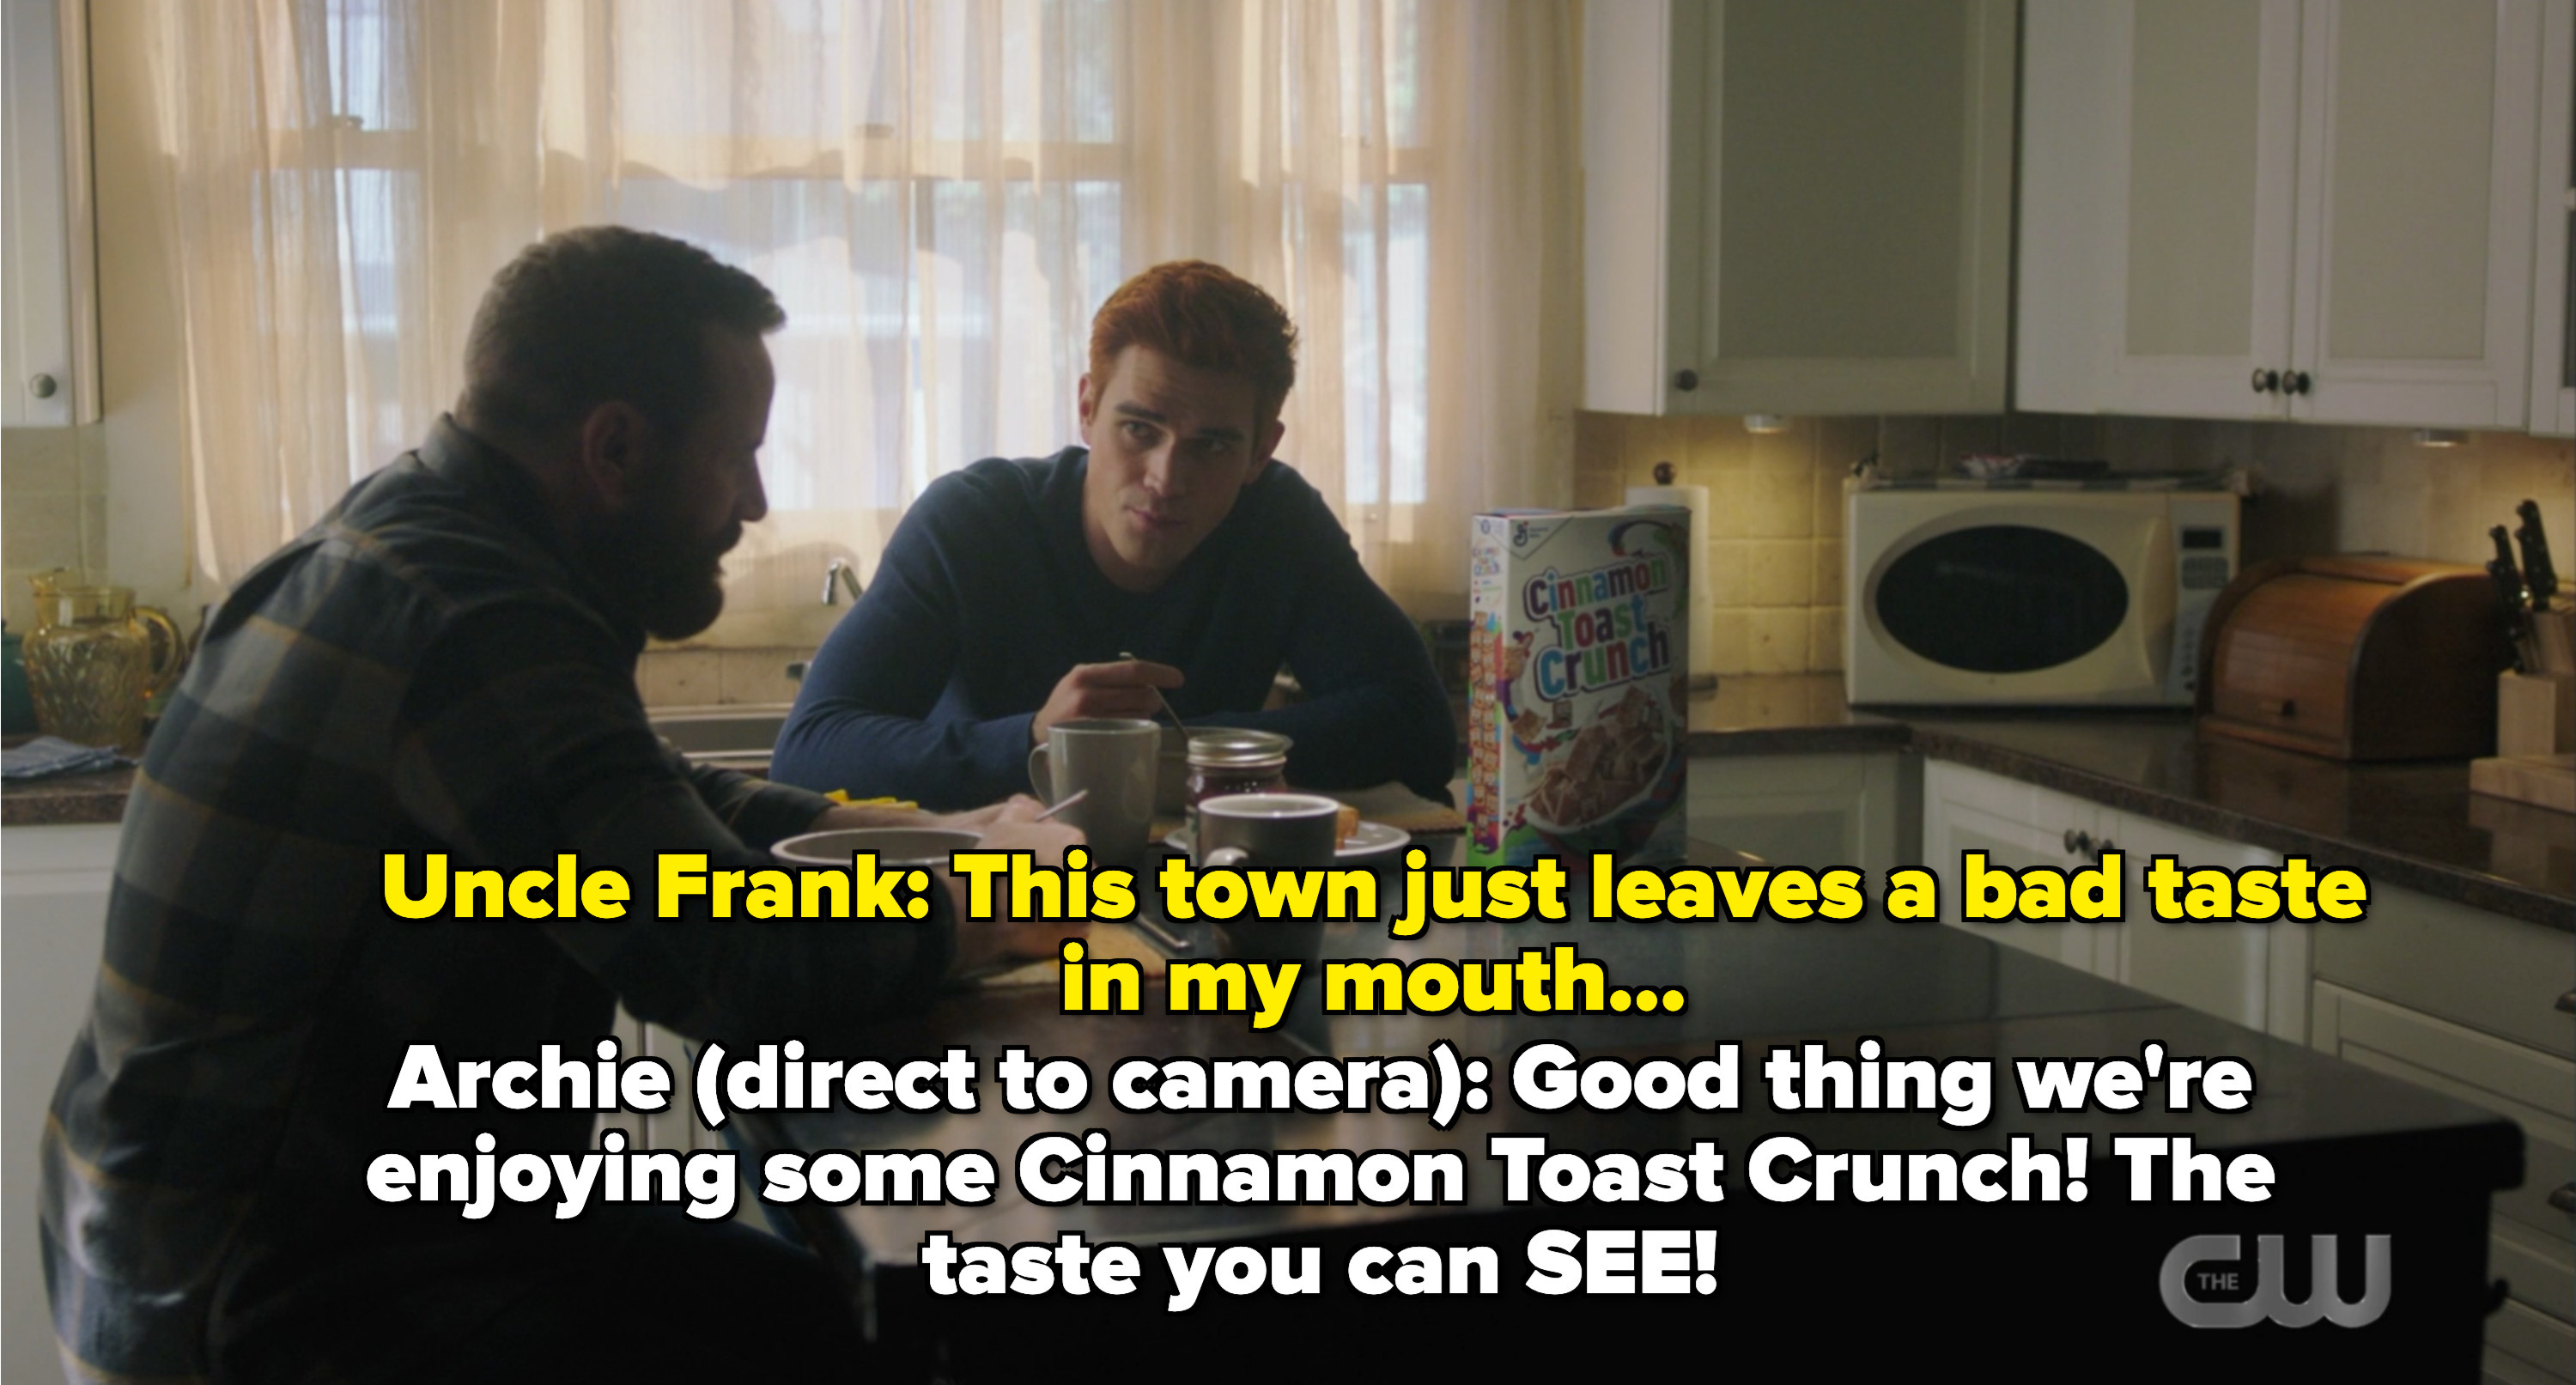 Archie and Frank eating cinnamon toast crunch